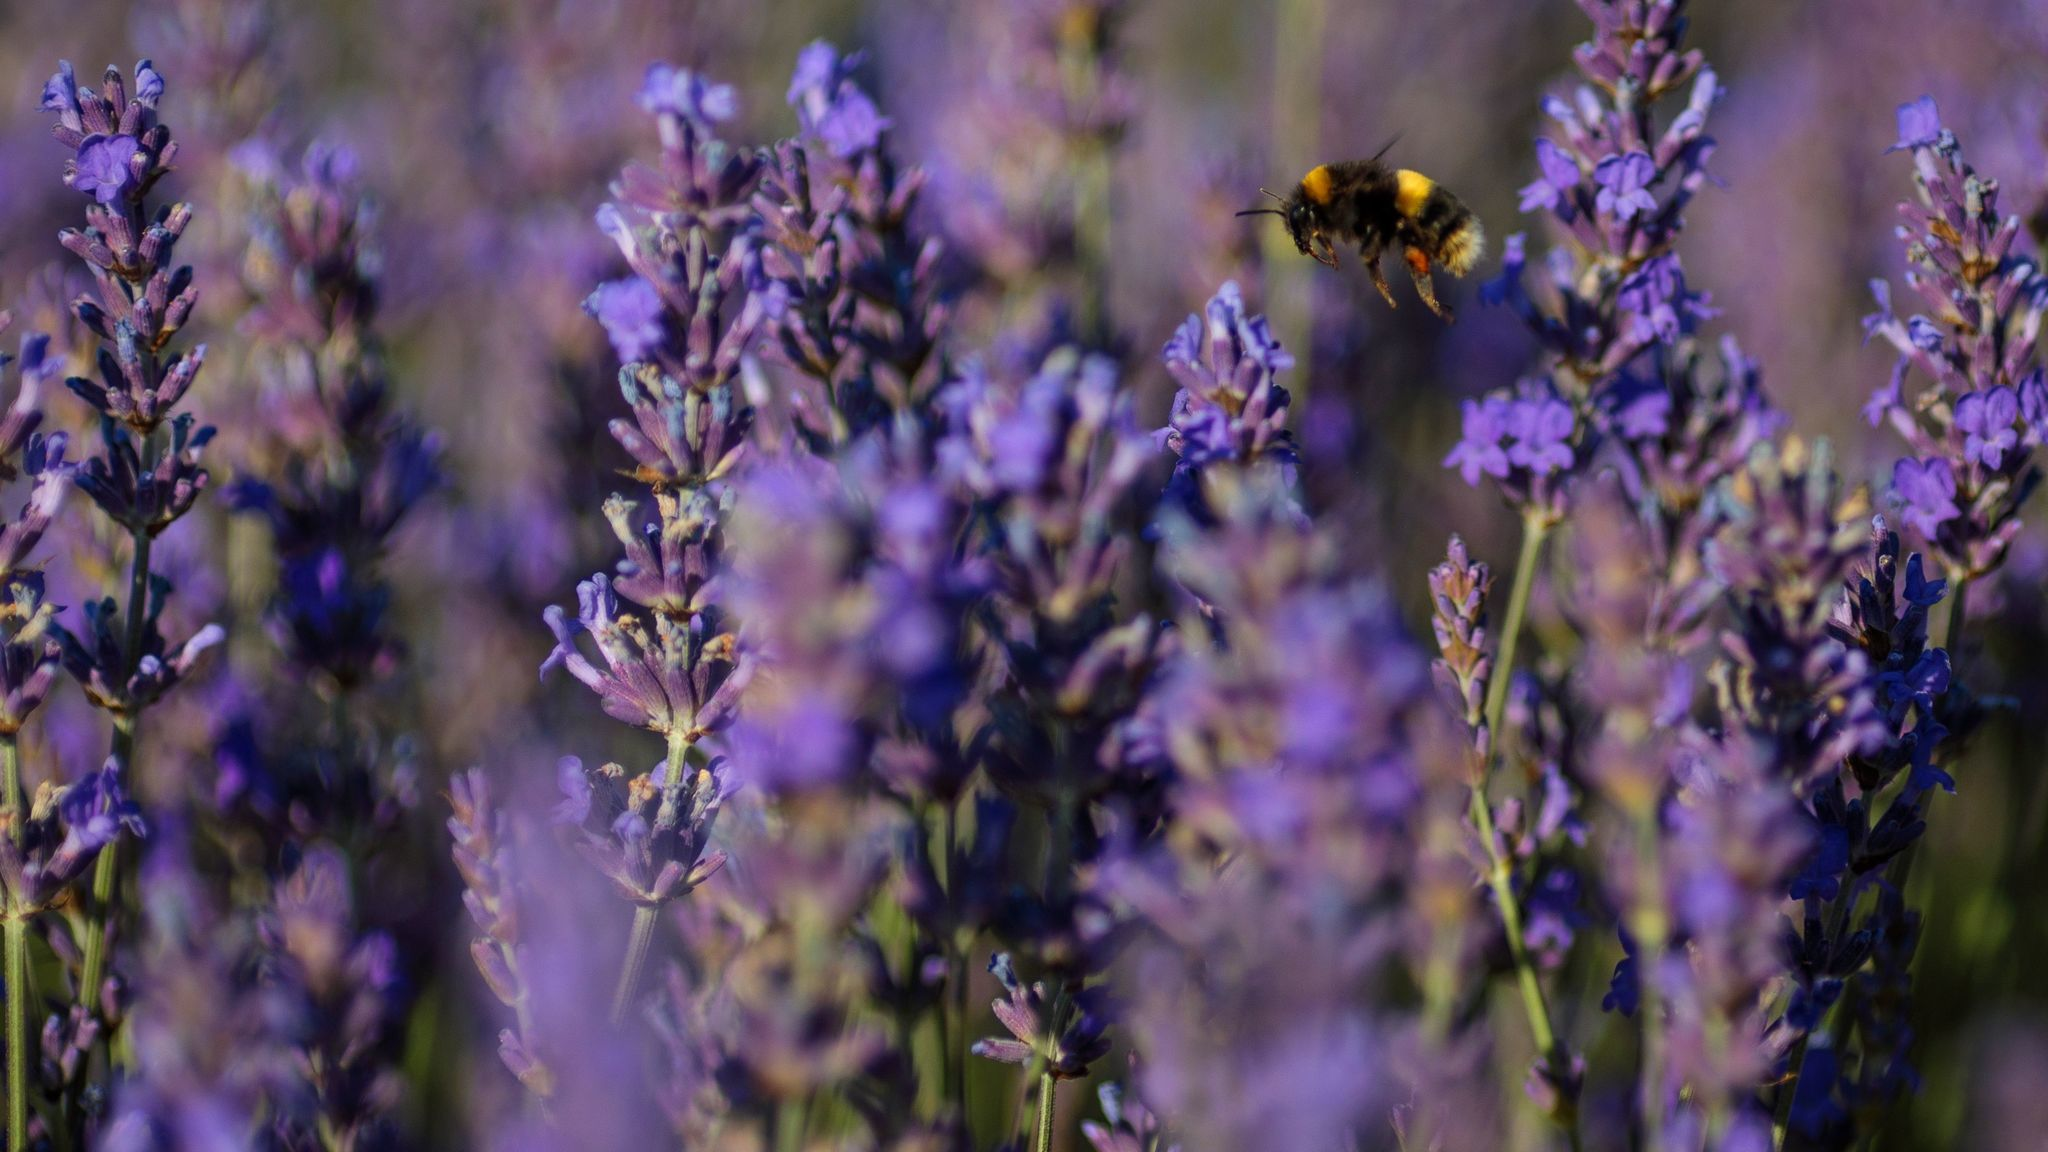 Lavender is a Mediterranean plant that survives long stretches of dry weather.